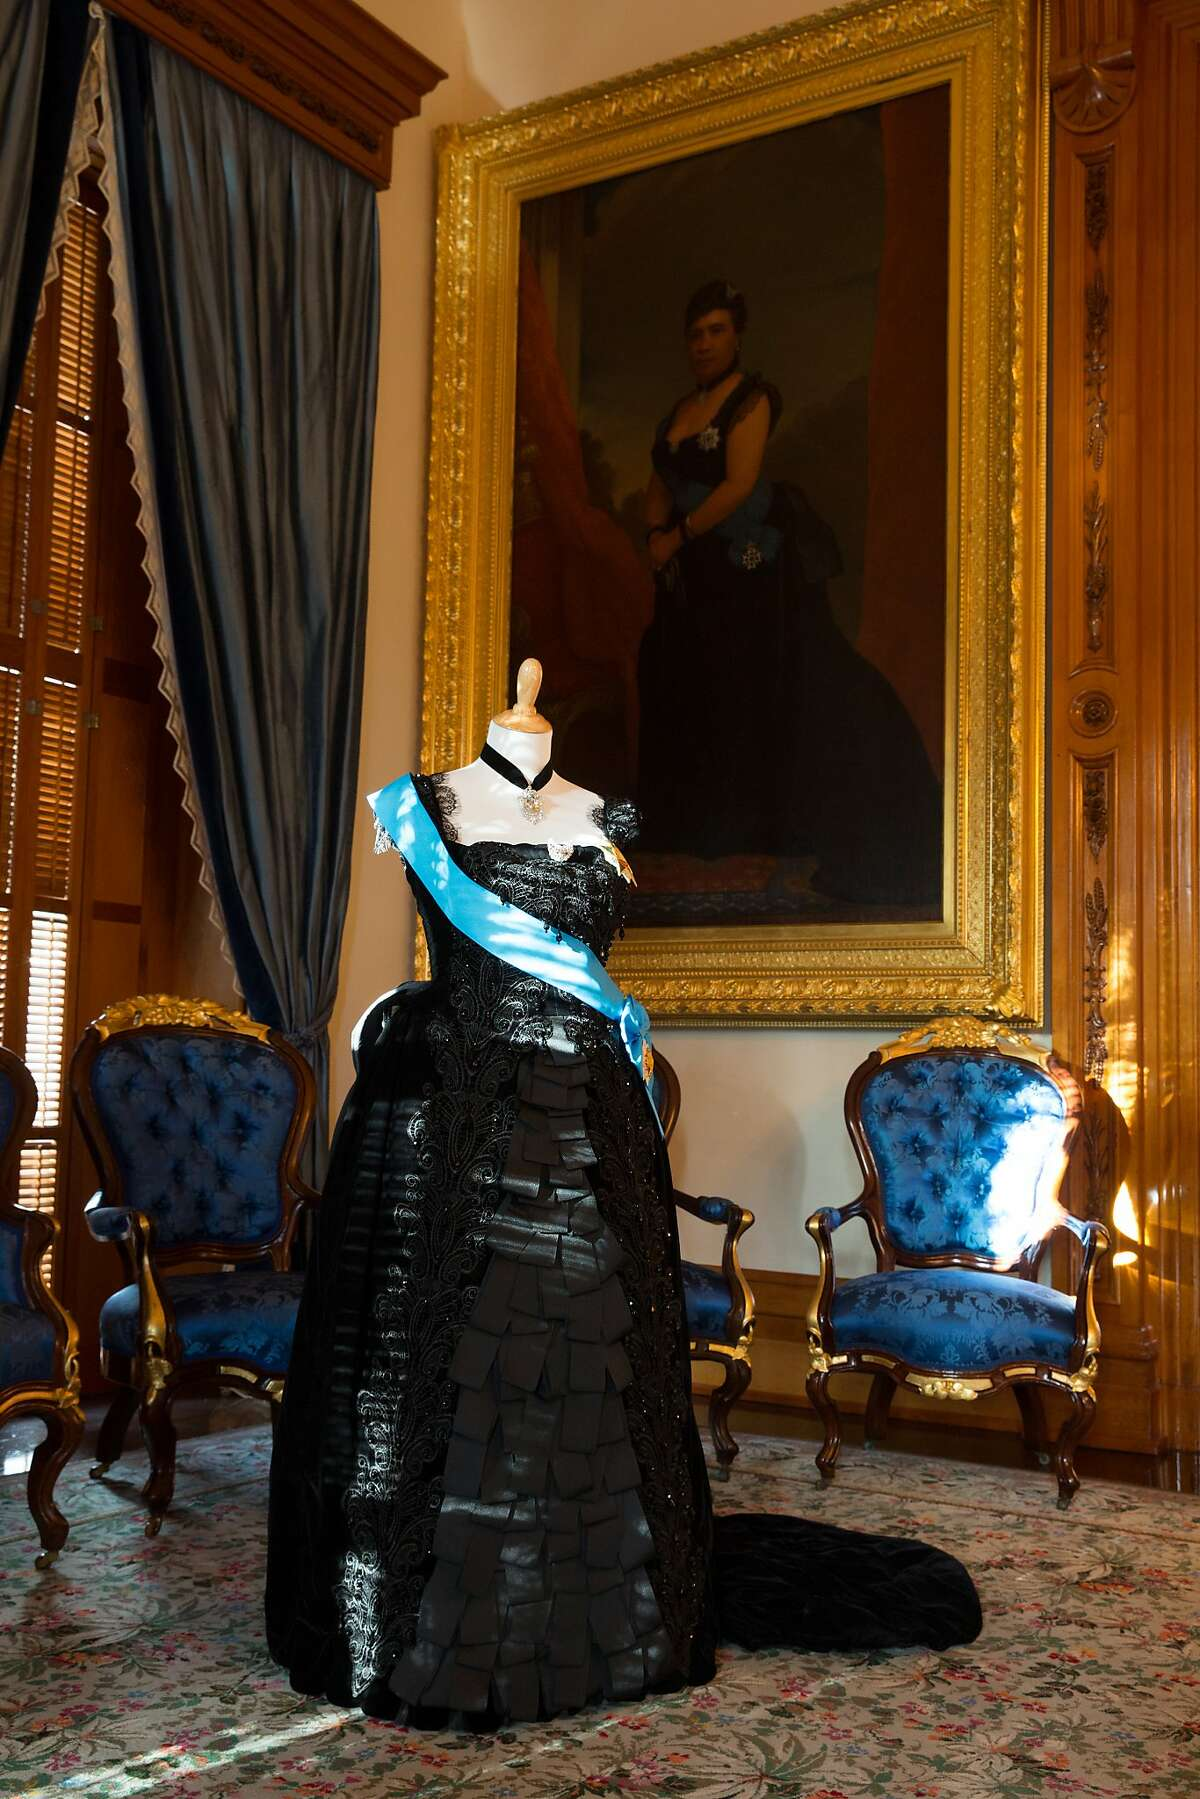 Queen Liliuokalani�s ribbon dress, one of a series of reproduced royal gowns, is seen in Iolani Palace�s Blue Room, below a portrait of her wearing the original.